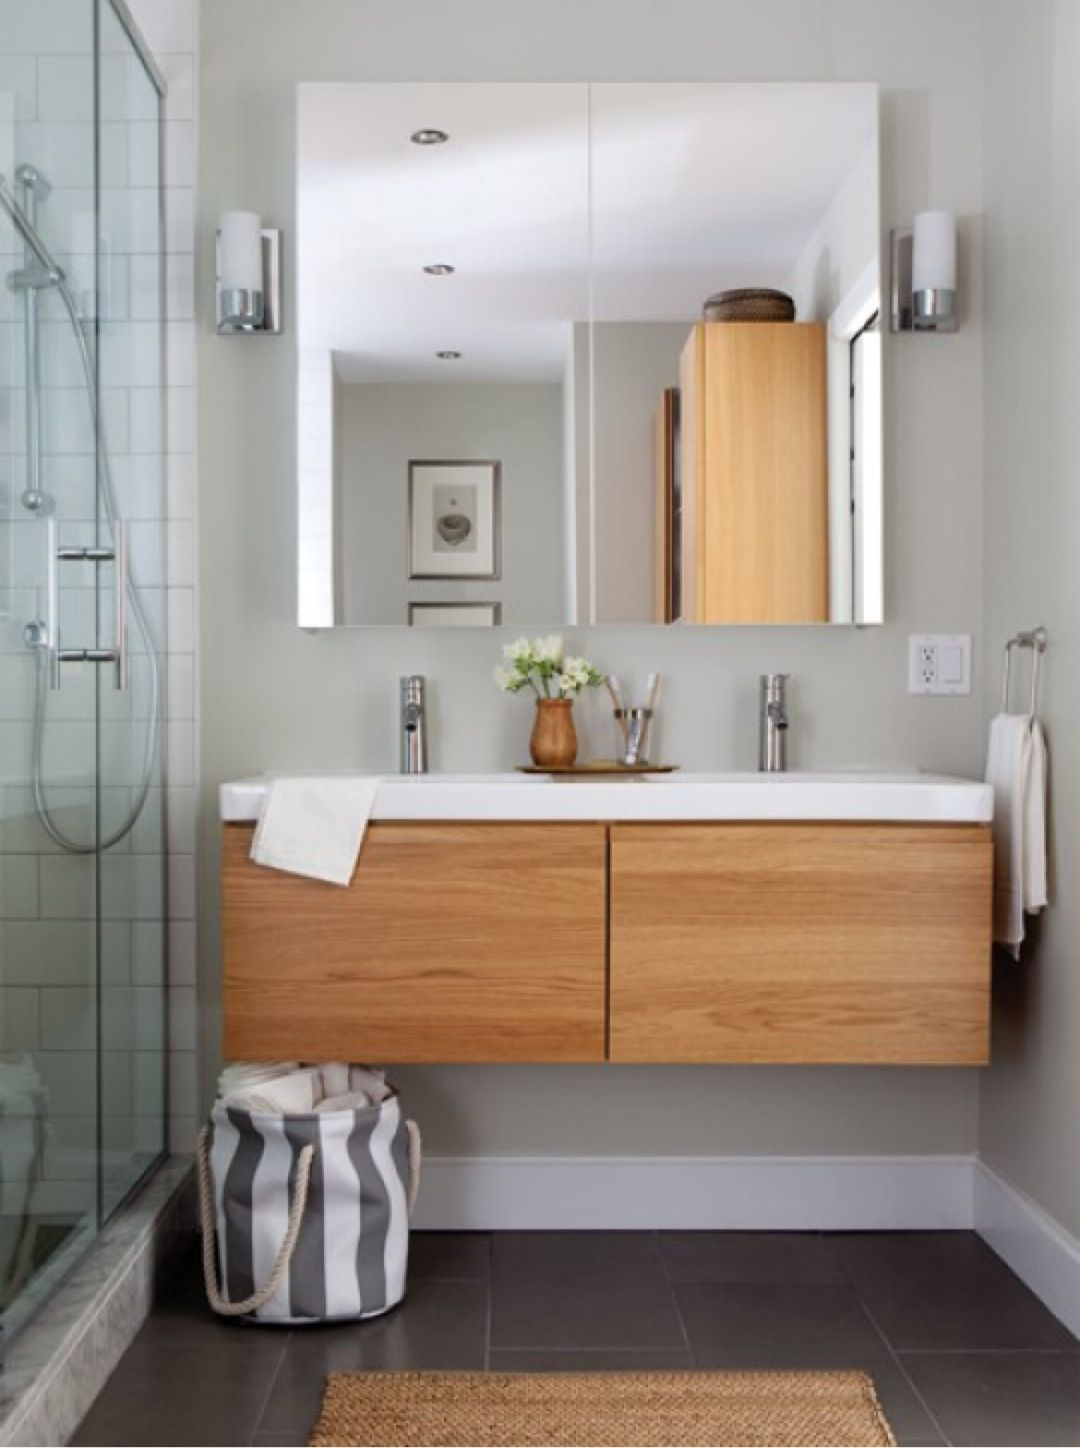 Meuble de salle de bain suspendu ikea gormorgon odensvik wood charcoal white sink and walnut wood - Ikea meuble salle de bain ...